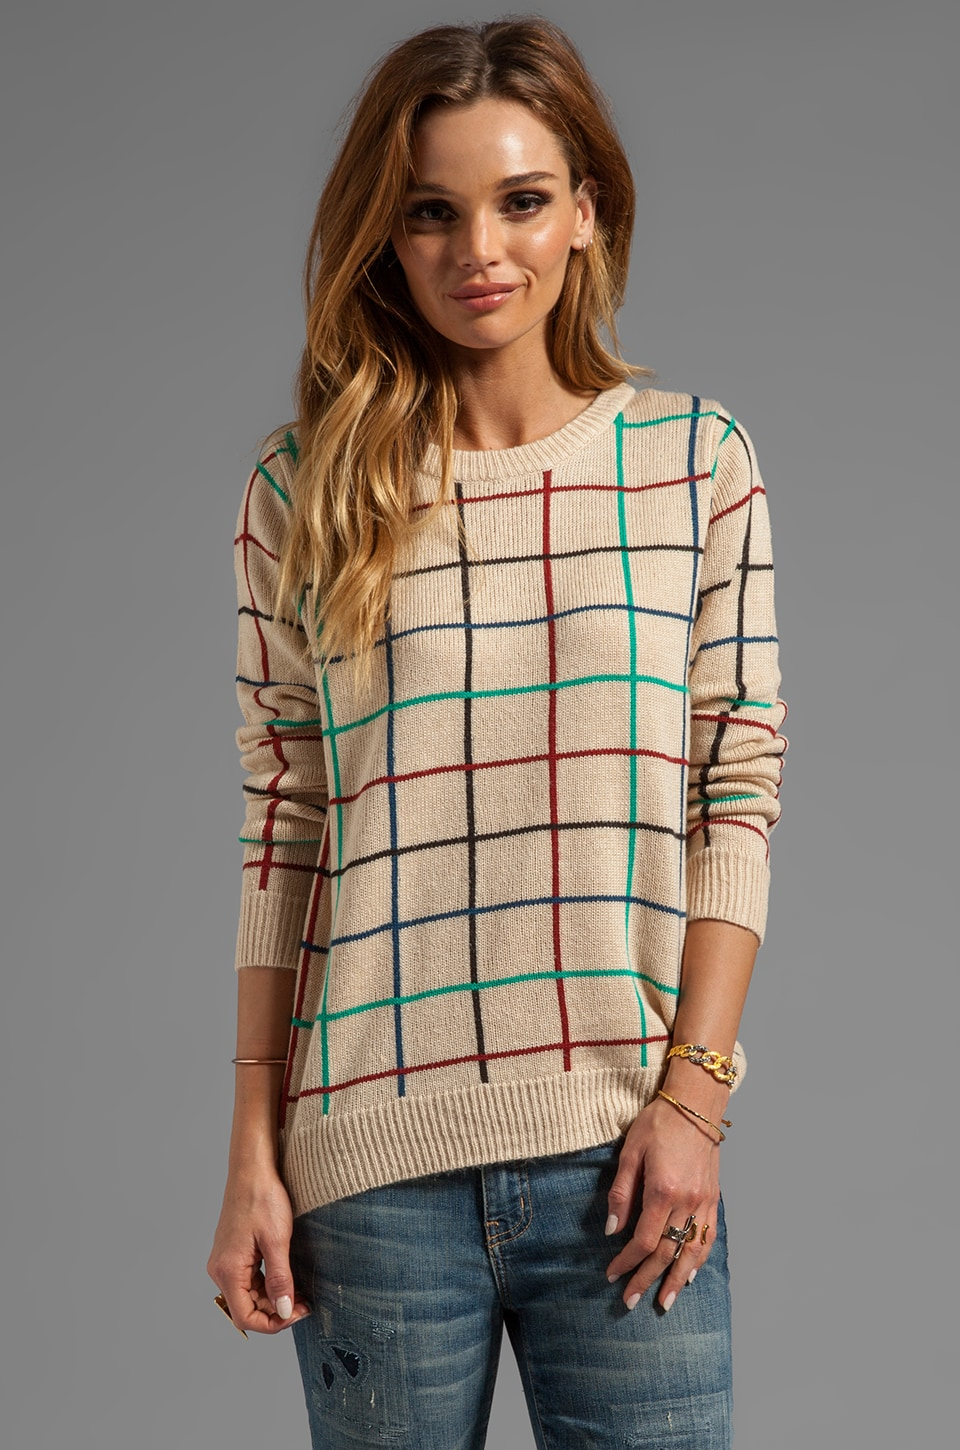 Ash-Rain-Oak Addison Sweater in Bisque Multi